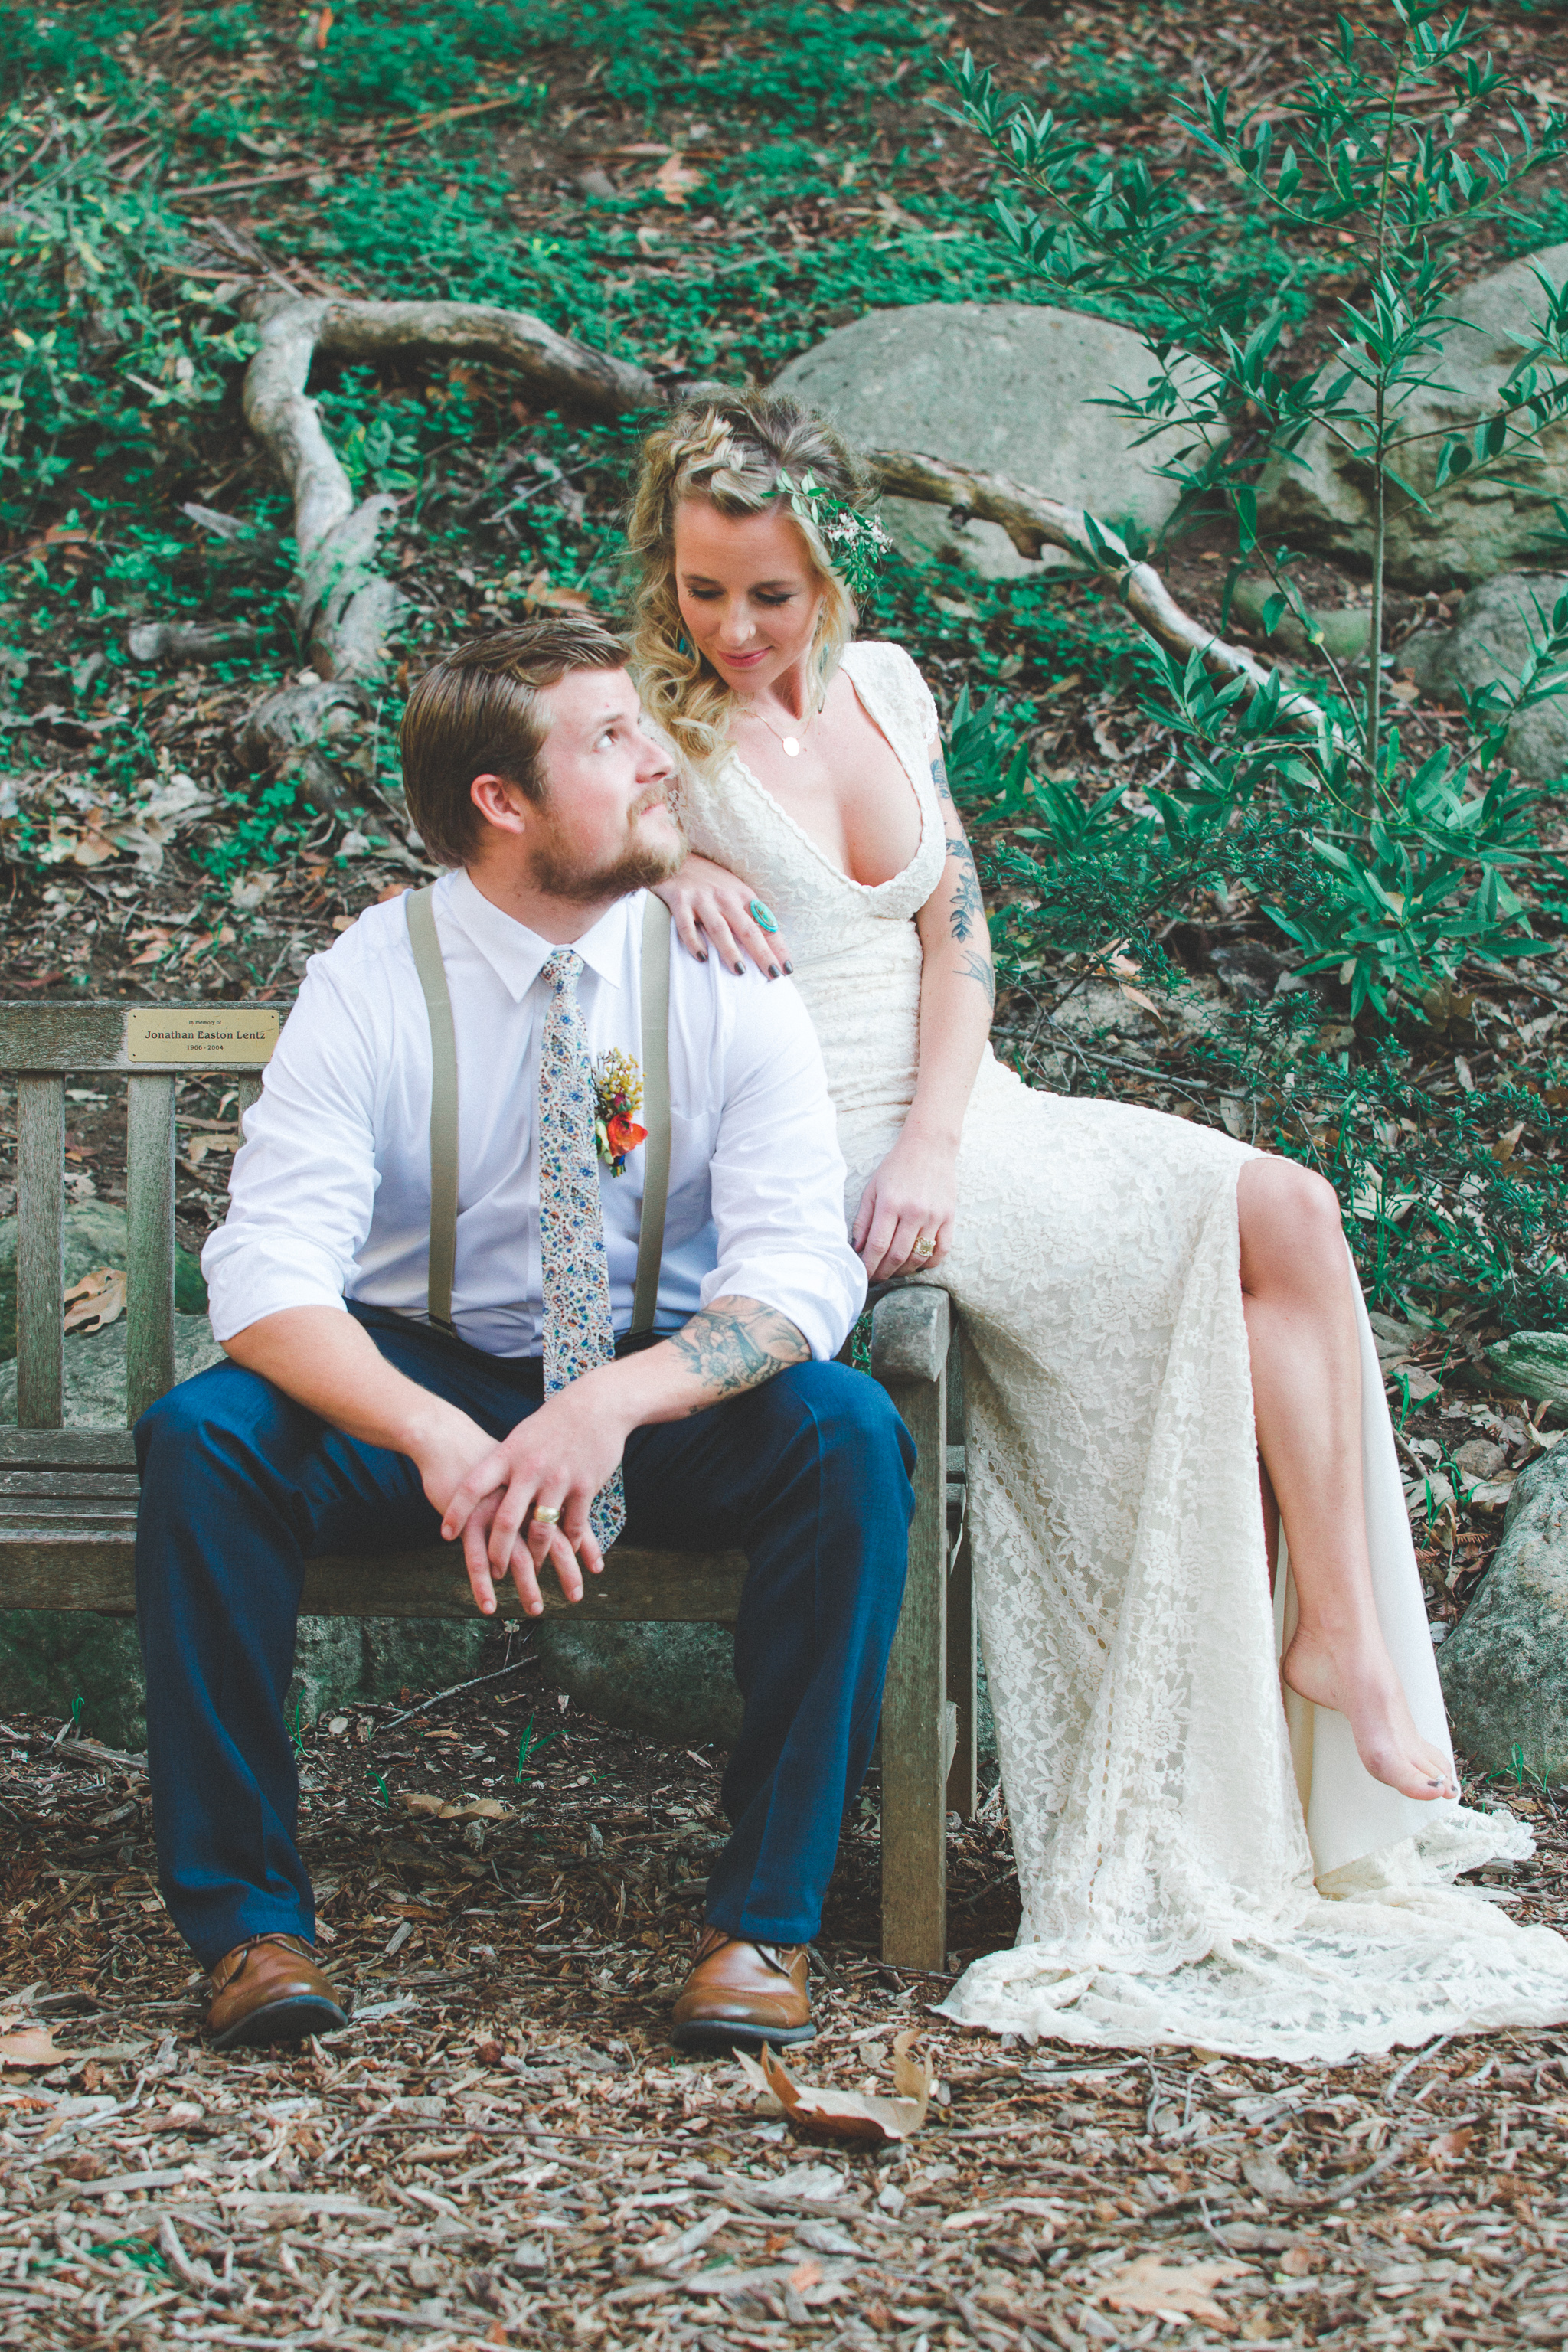 A Vibrant and Eclectic Bohemian Wedding Editorial